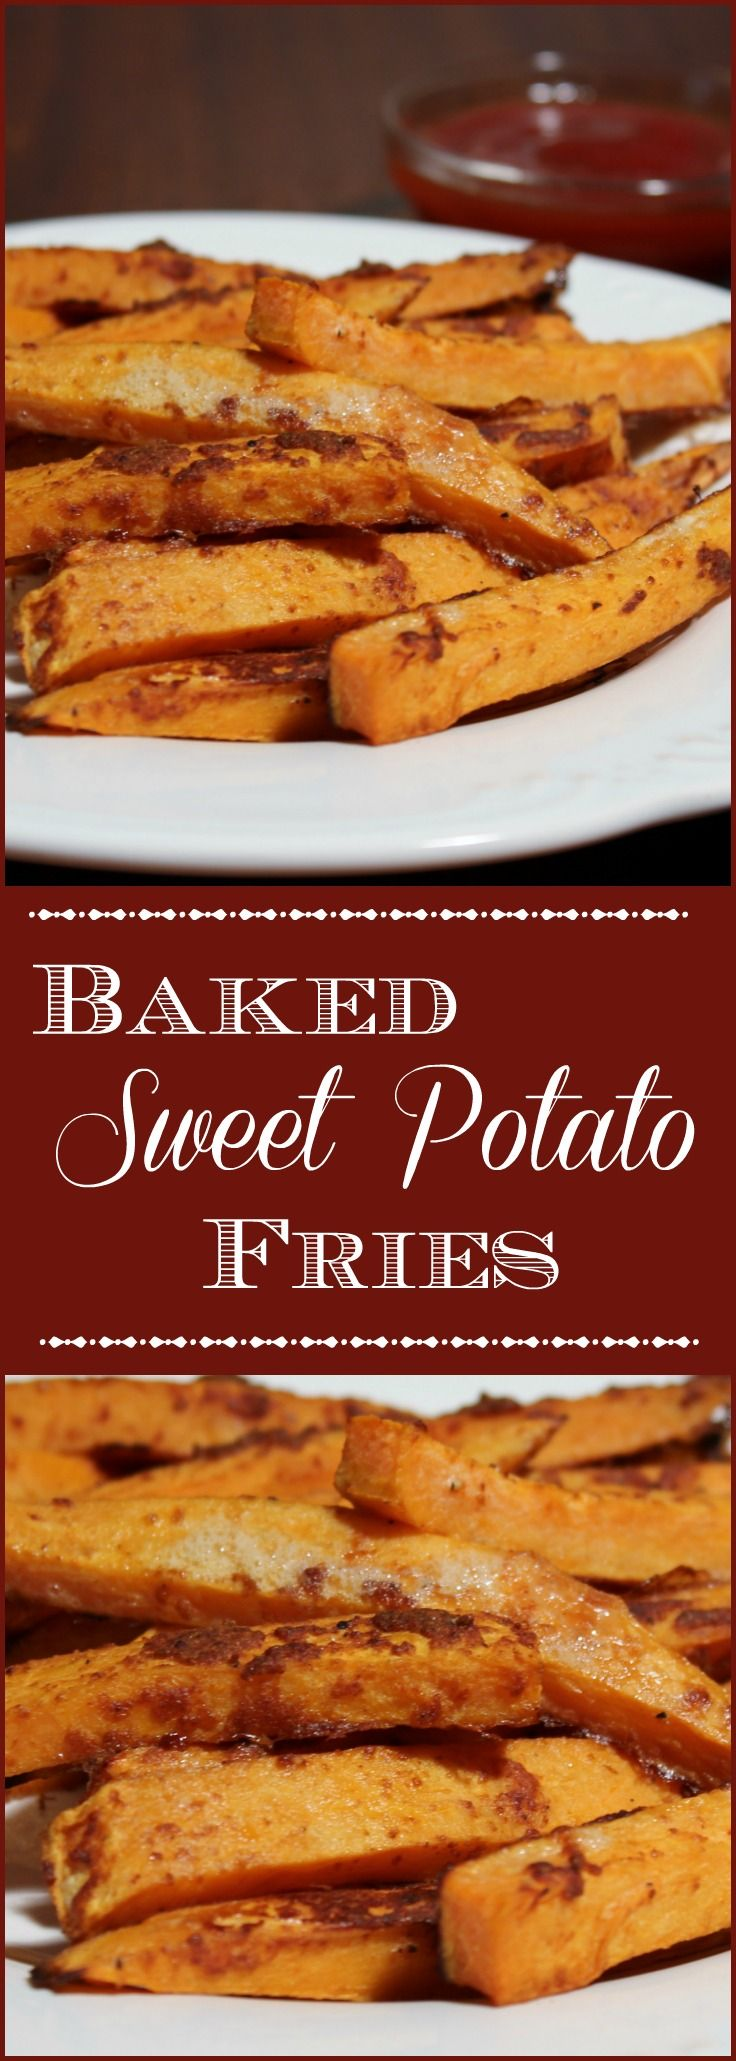 Baked Sweet Potato Fries - One of my favorite pub snacks are sweet potato fries. This savory snack or  side dish is the perfect accompaniment to a cool beer and a hardy sandwich.